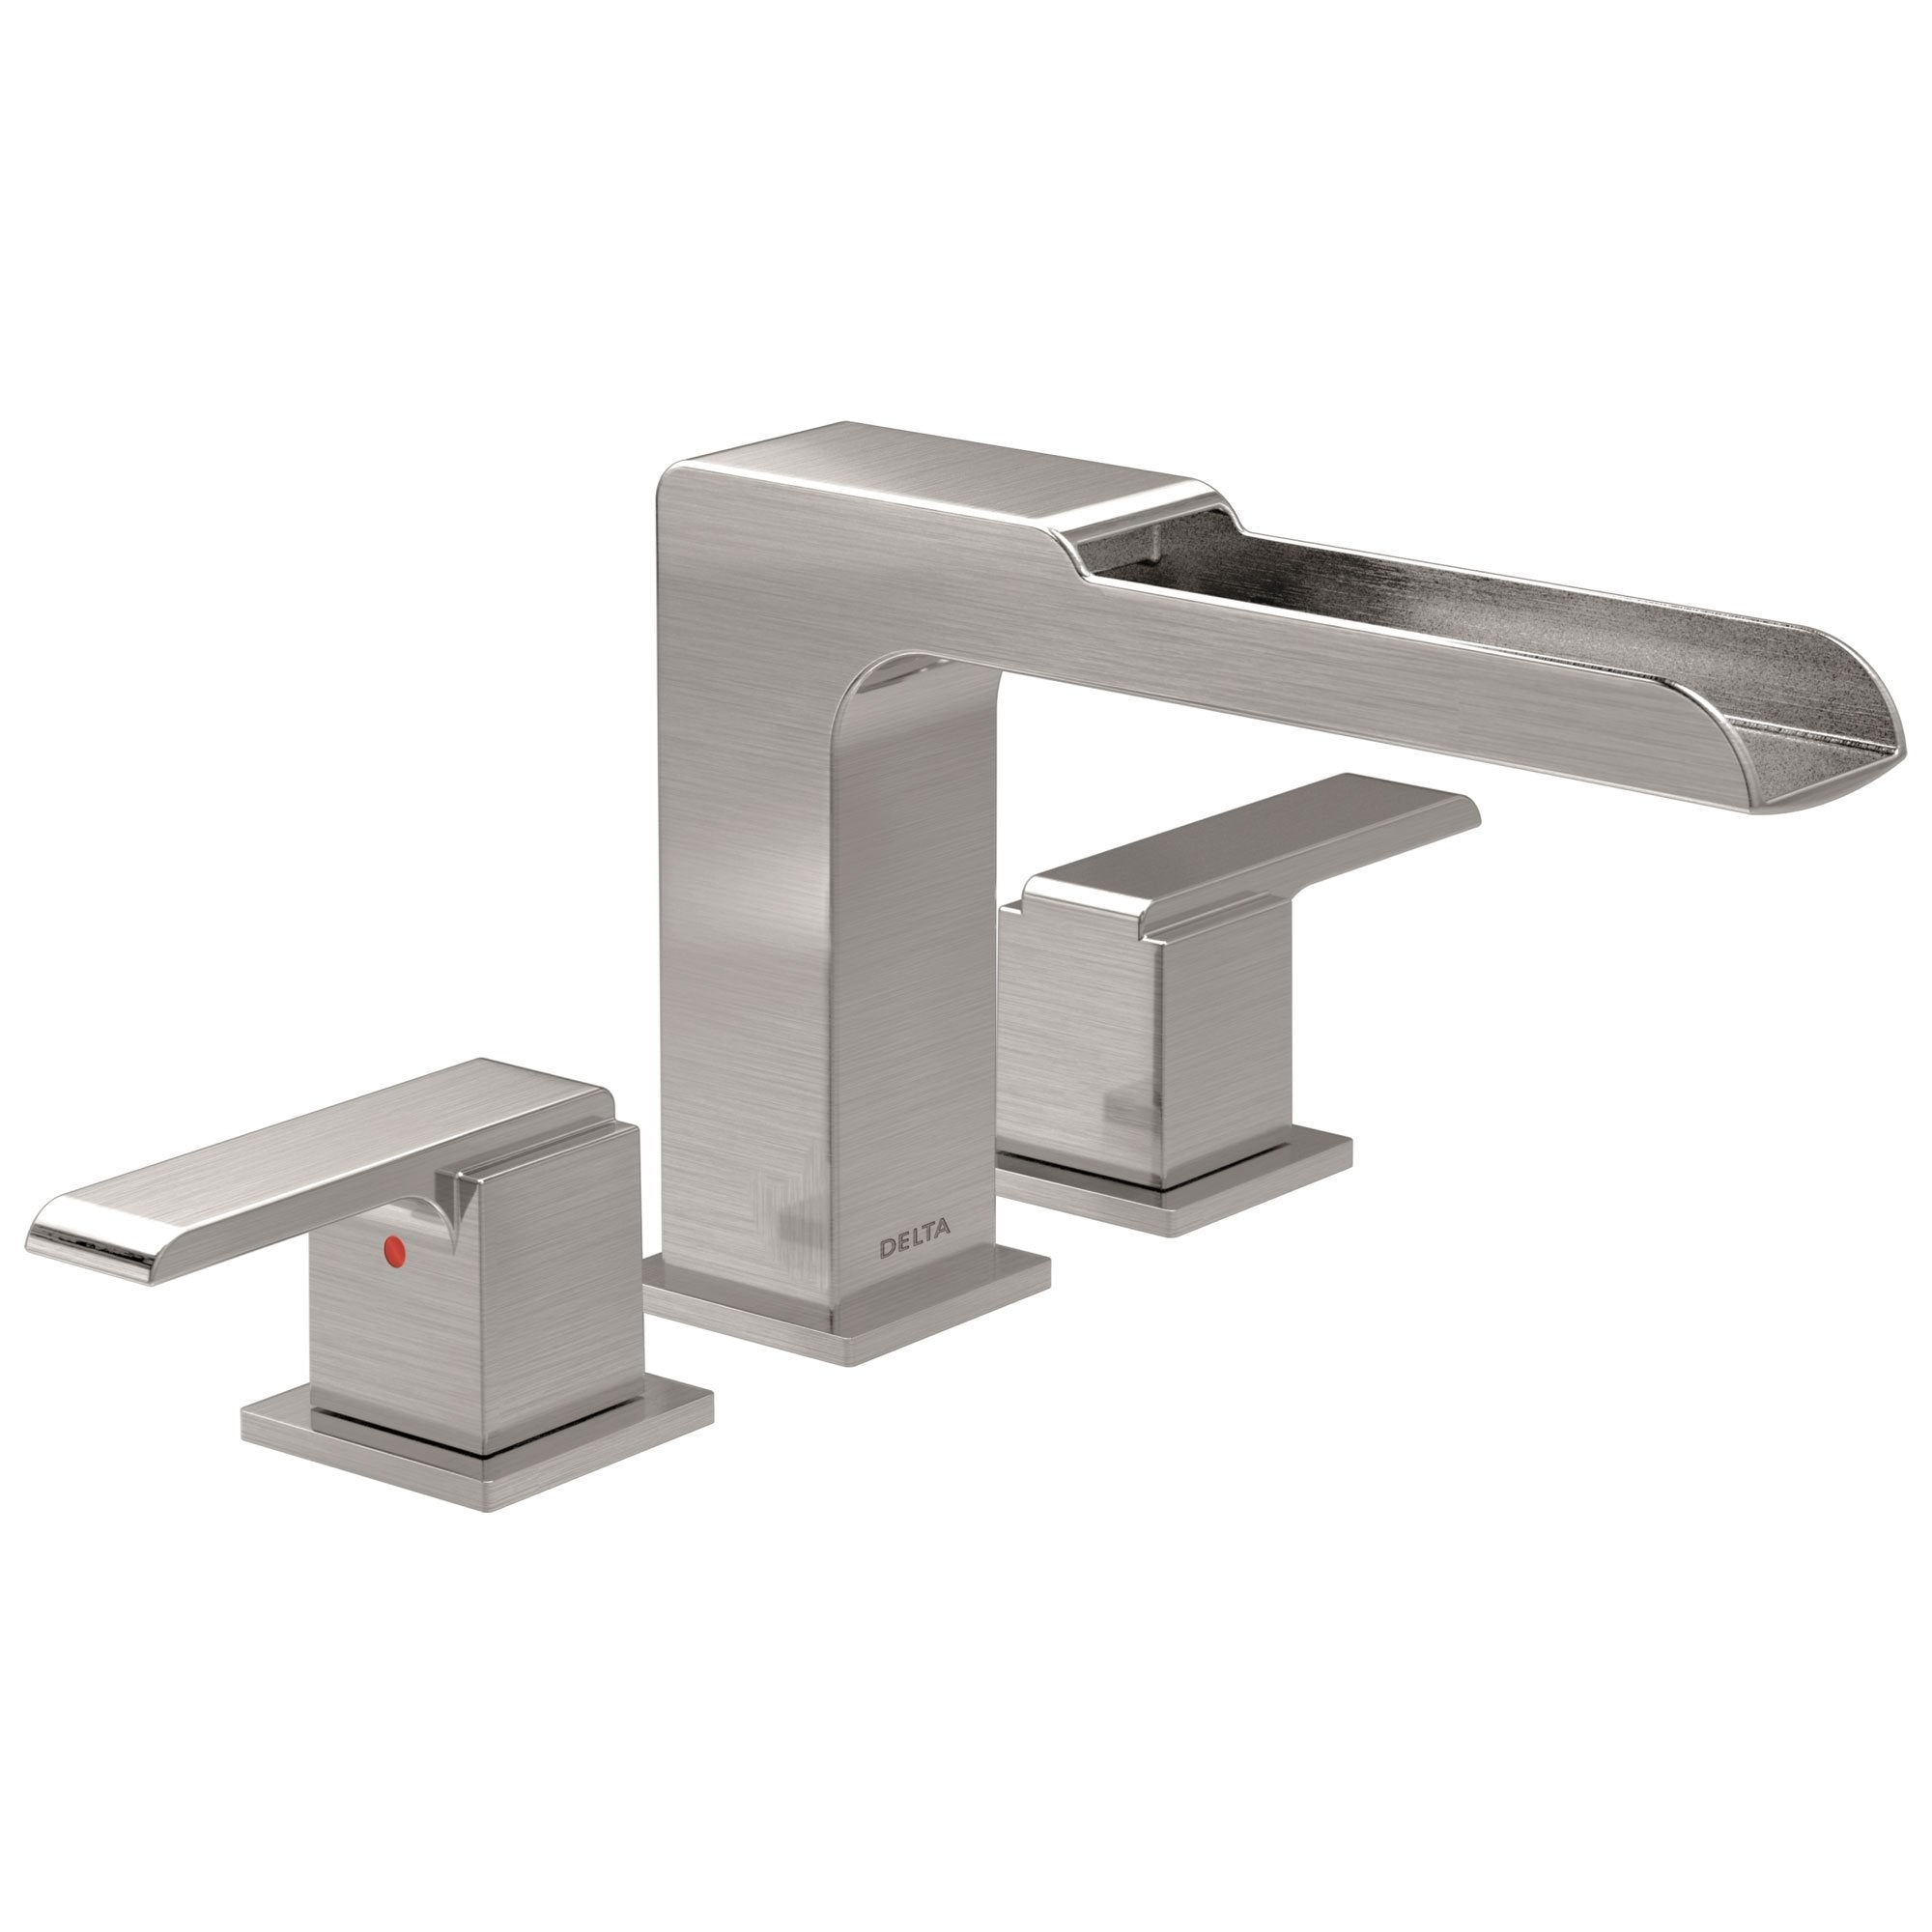 Delta Ara Collection Modern Stainless Steel Finish Roman Tub Filler Faucet with Channel Spout Includes Trim Kit and Rough-in Valve D1916V